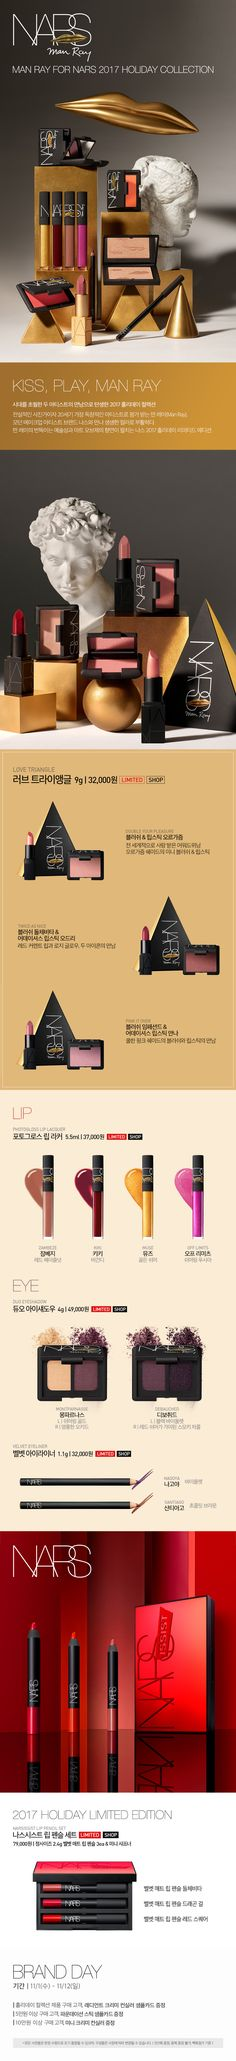 NARS(나스) SPECIAL GIFT 기획전 | 갤러리아몰_Premium life of yours